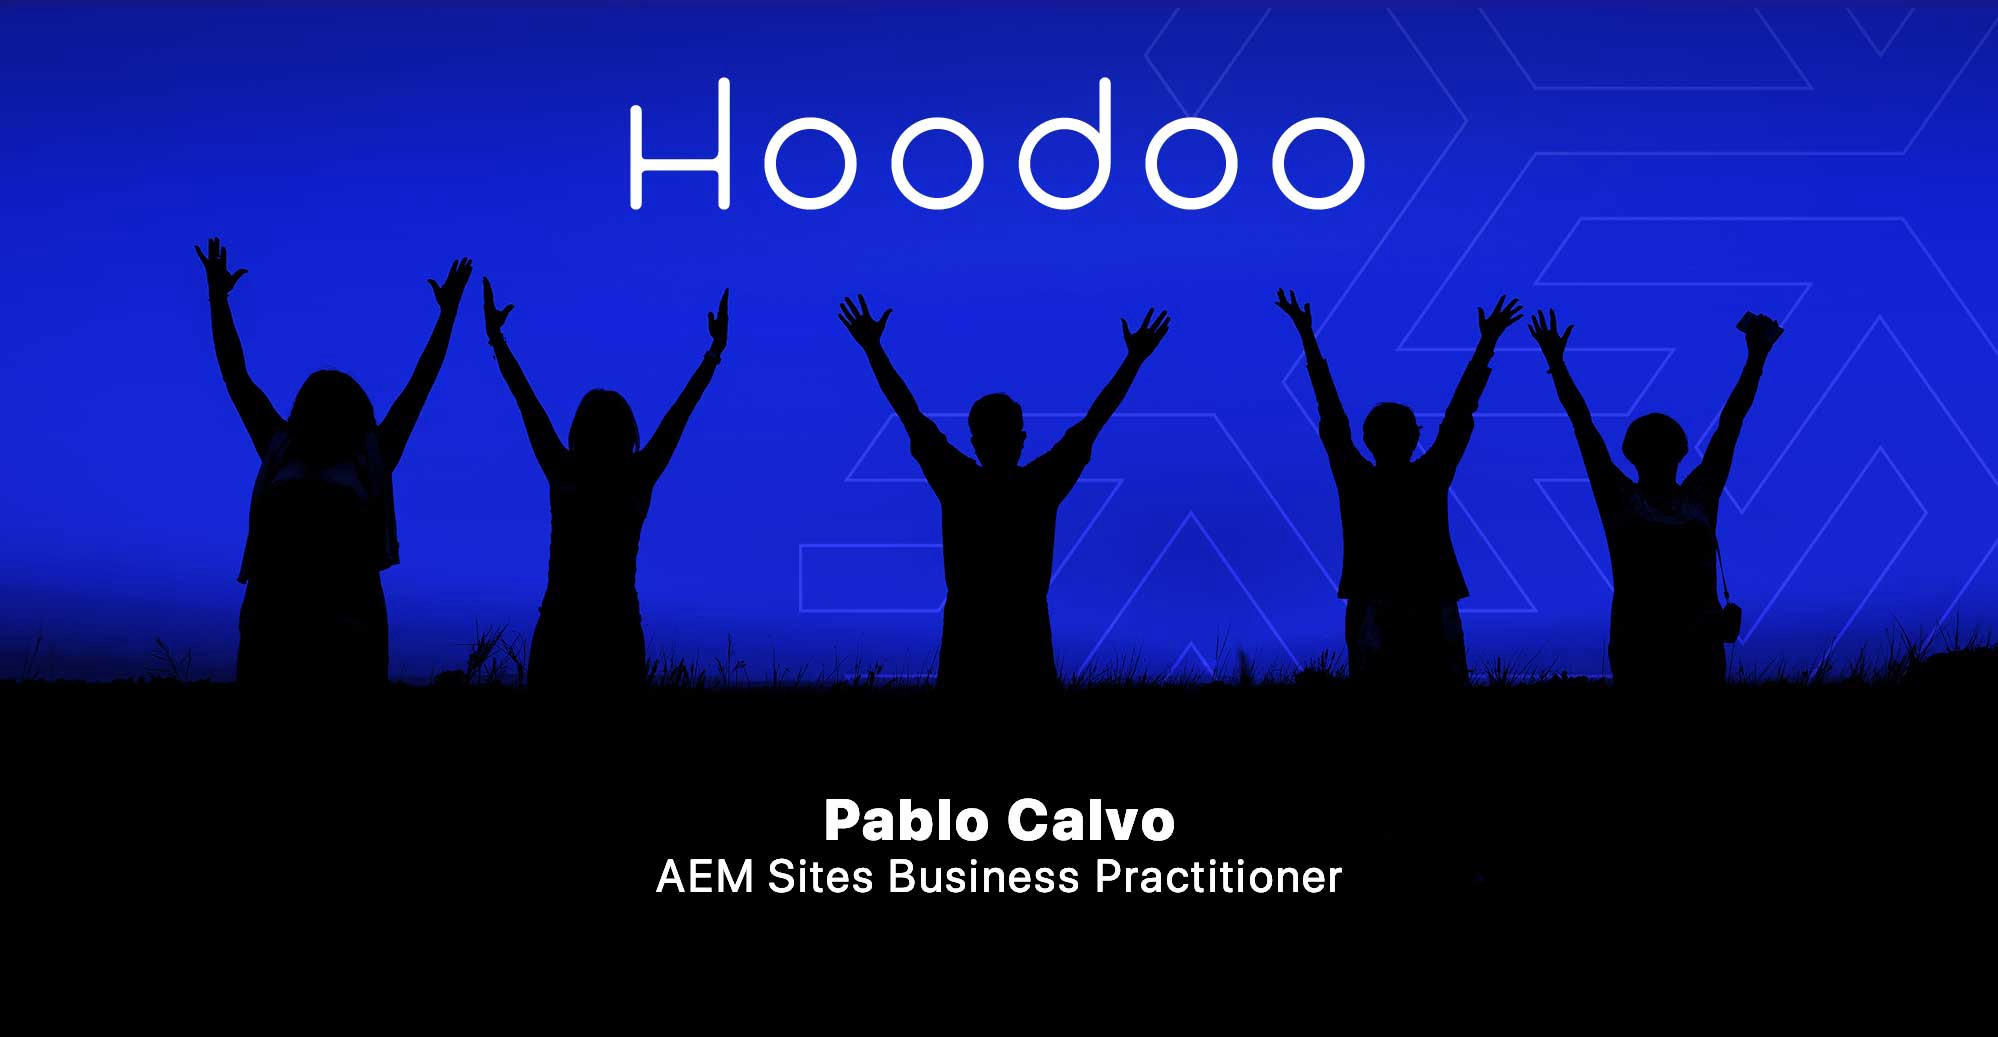 Pablo Calvo Completes AEM Sites Business Practitioner Certification